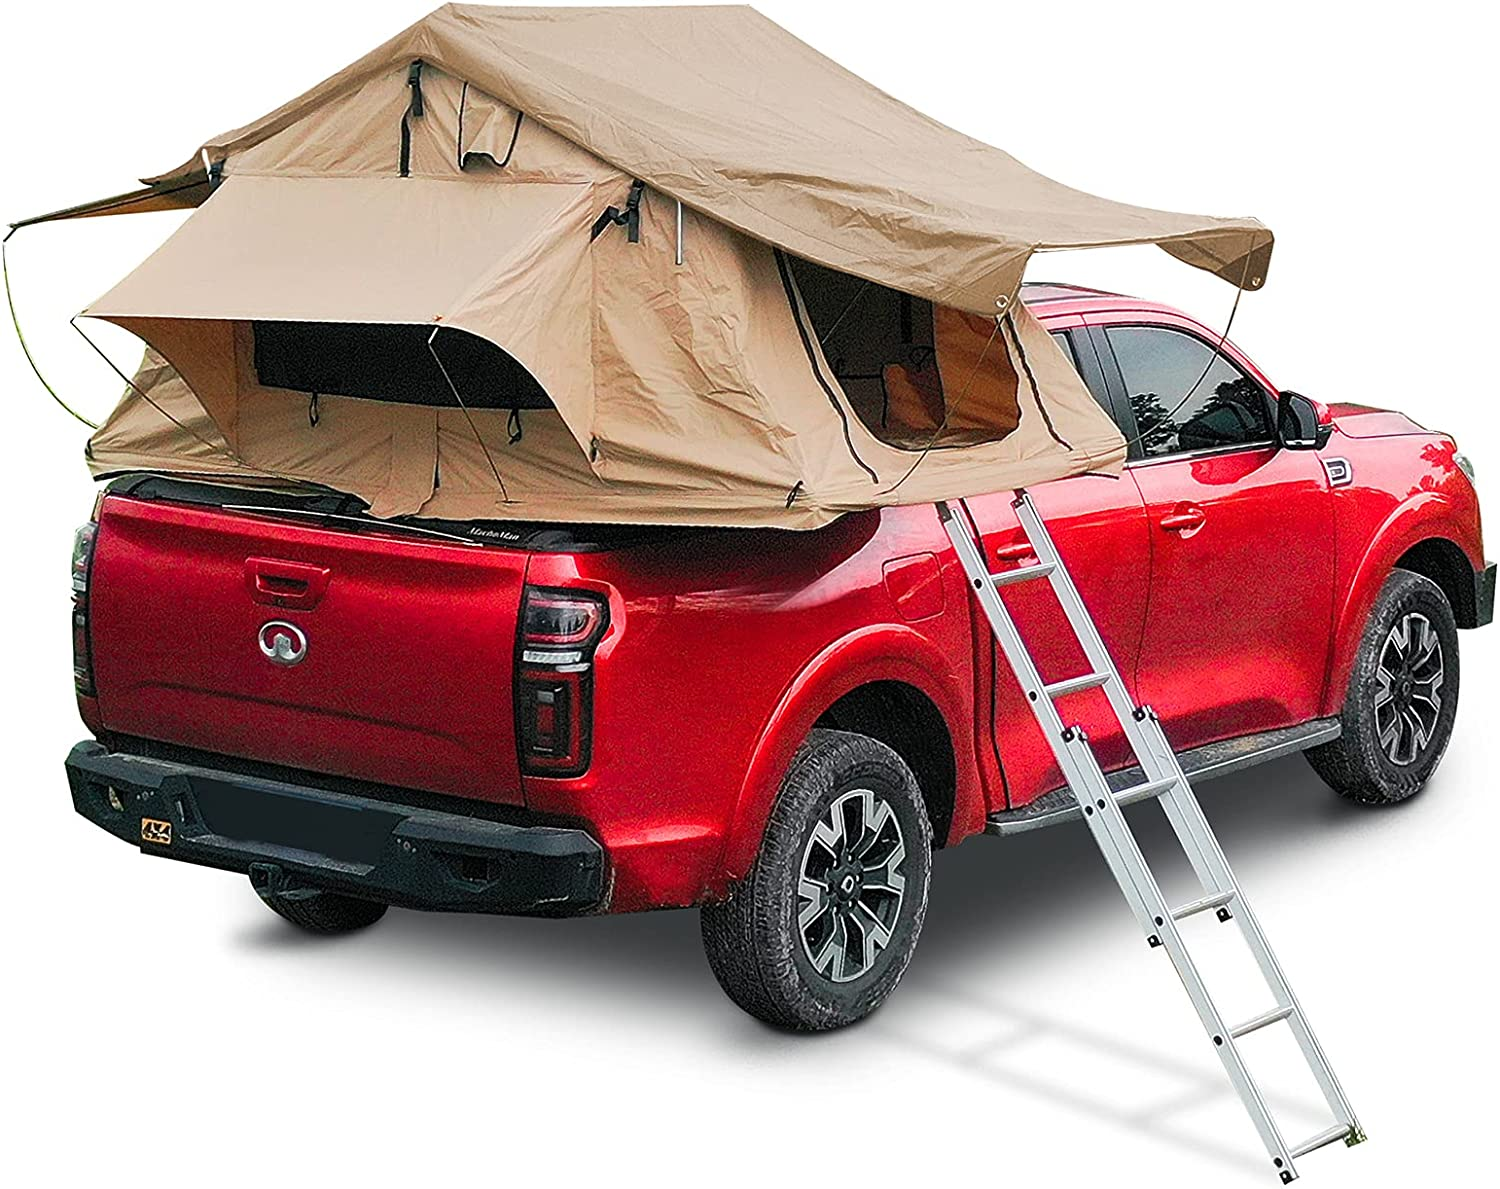 Roof Tent Max 84% OFF with Limited time trial price Retractable Ladder Car Bed for Tents Pickup Camp